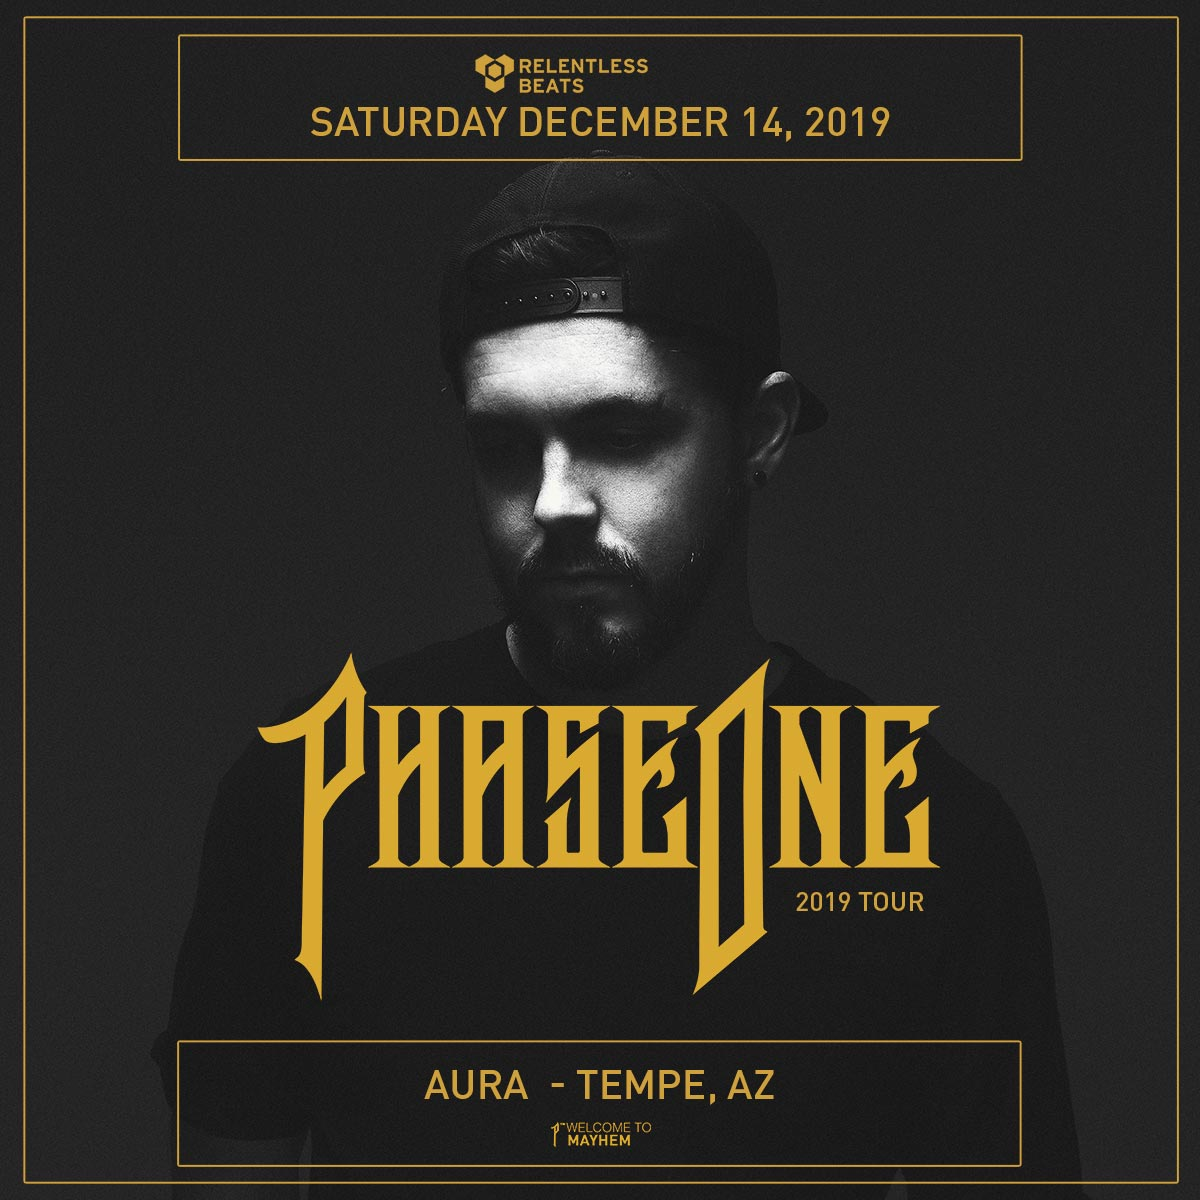 Flyer for PhaseOne